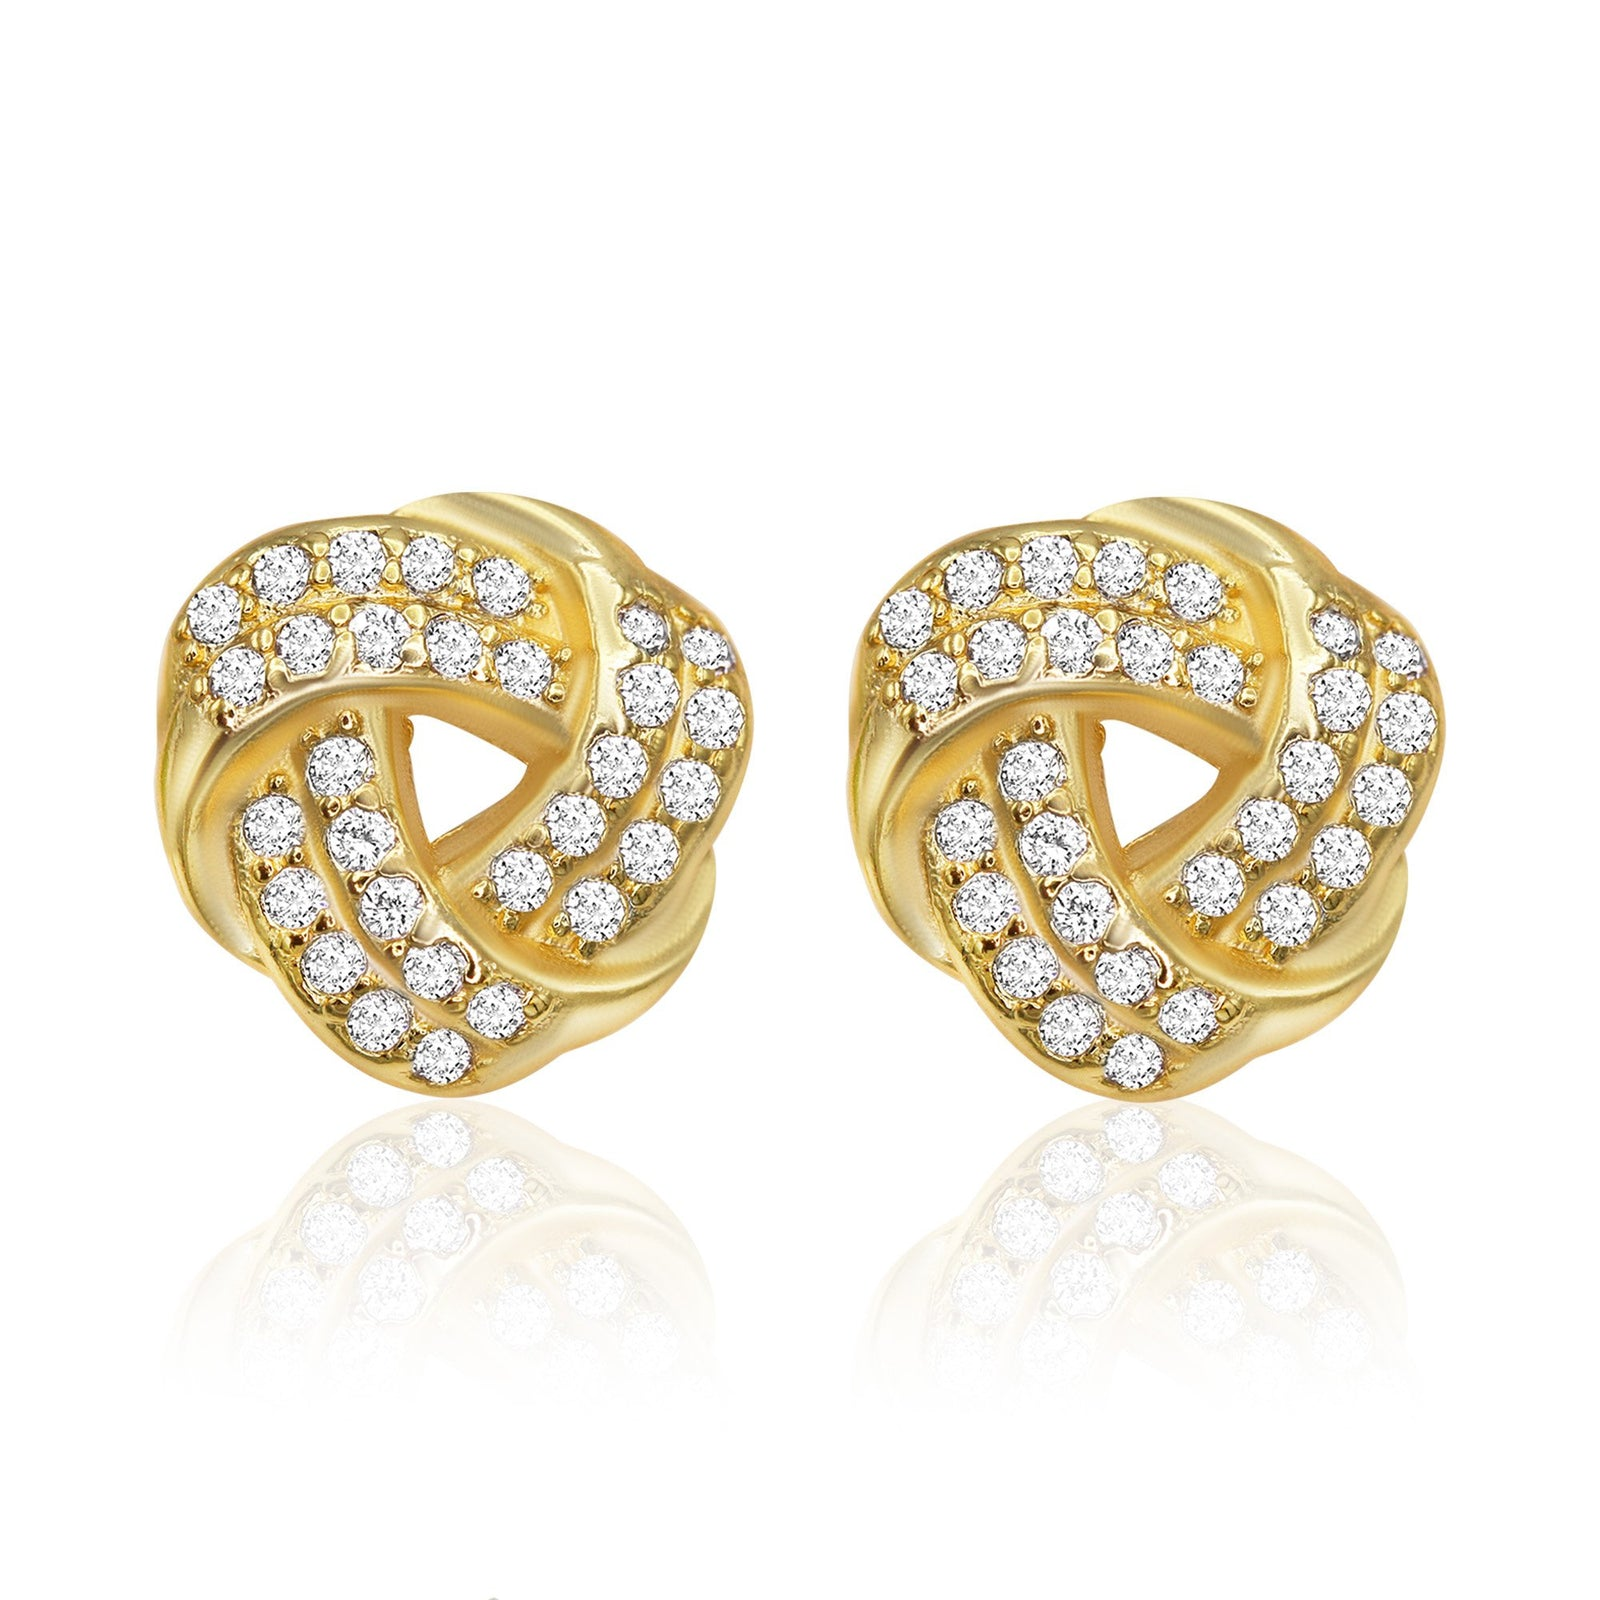 Trinity Celtic Knot Stud 14K Gold Plated CZ Stud Earrings Cubic Zirconia Ear Piercing Fashion Jewelry